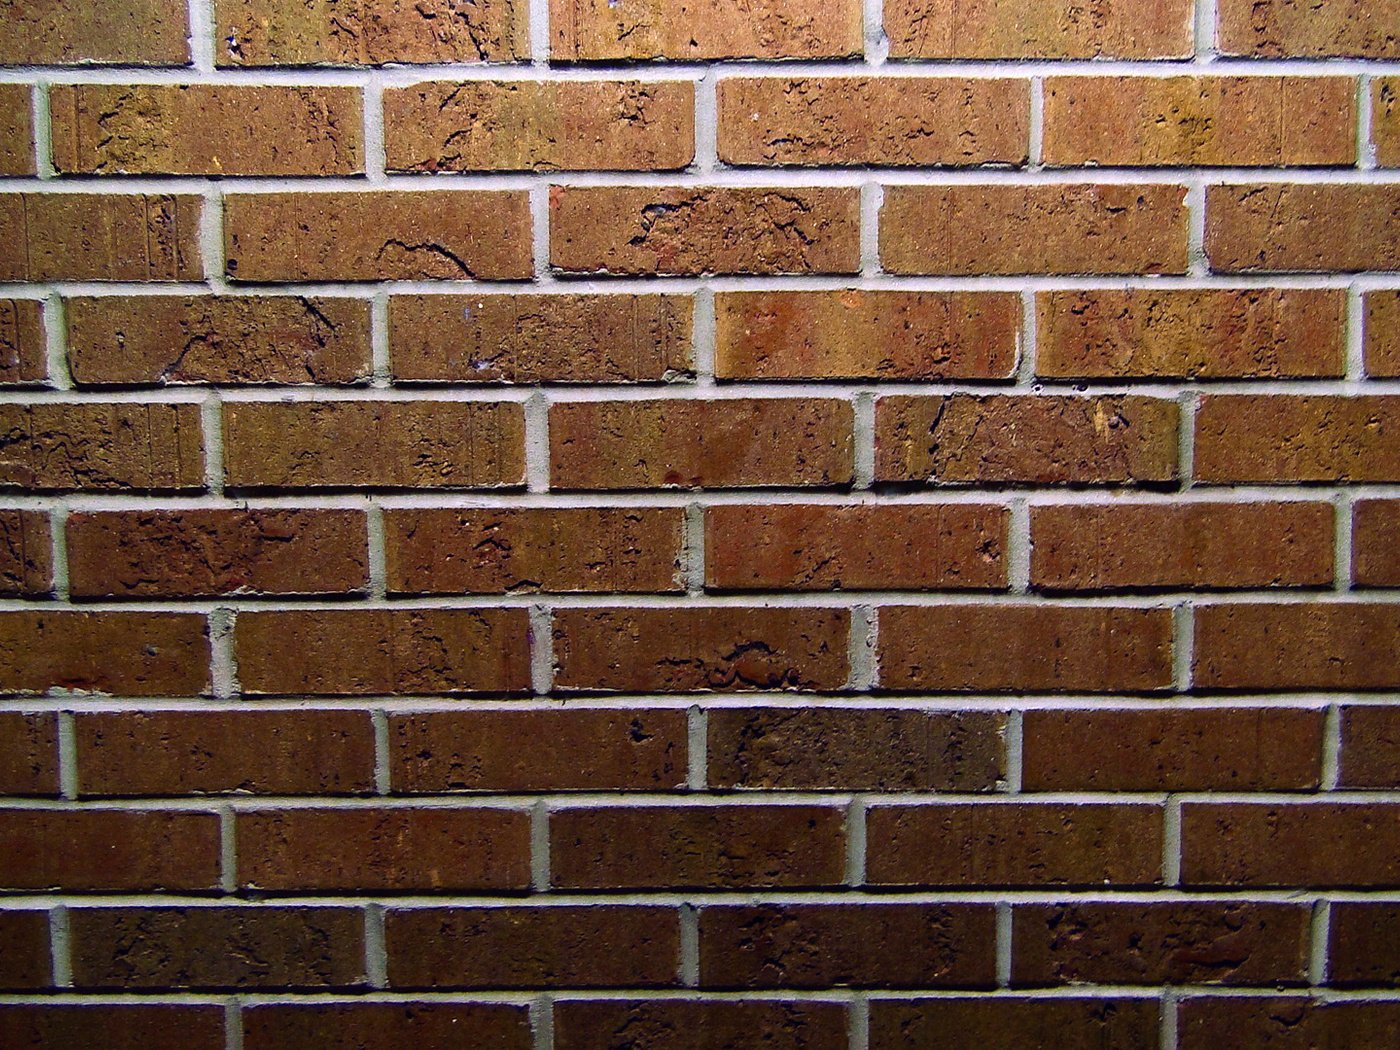 brick wall 2 Print and download another brick in the wall (part 2) sheet music by pink floyd sheet music arranged for piano/vocal/guitar in d minor (transposable) sku: mn0044738 print and download another brick in the wall (part 2) sheet music by pink floyd sheet music arranged for piano/vocal/guitar in d minor (transposable.